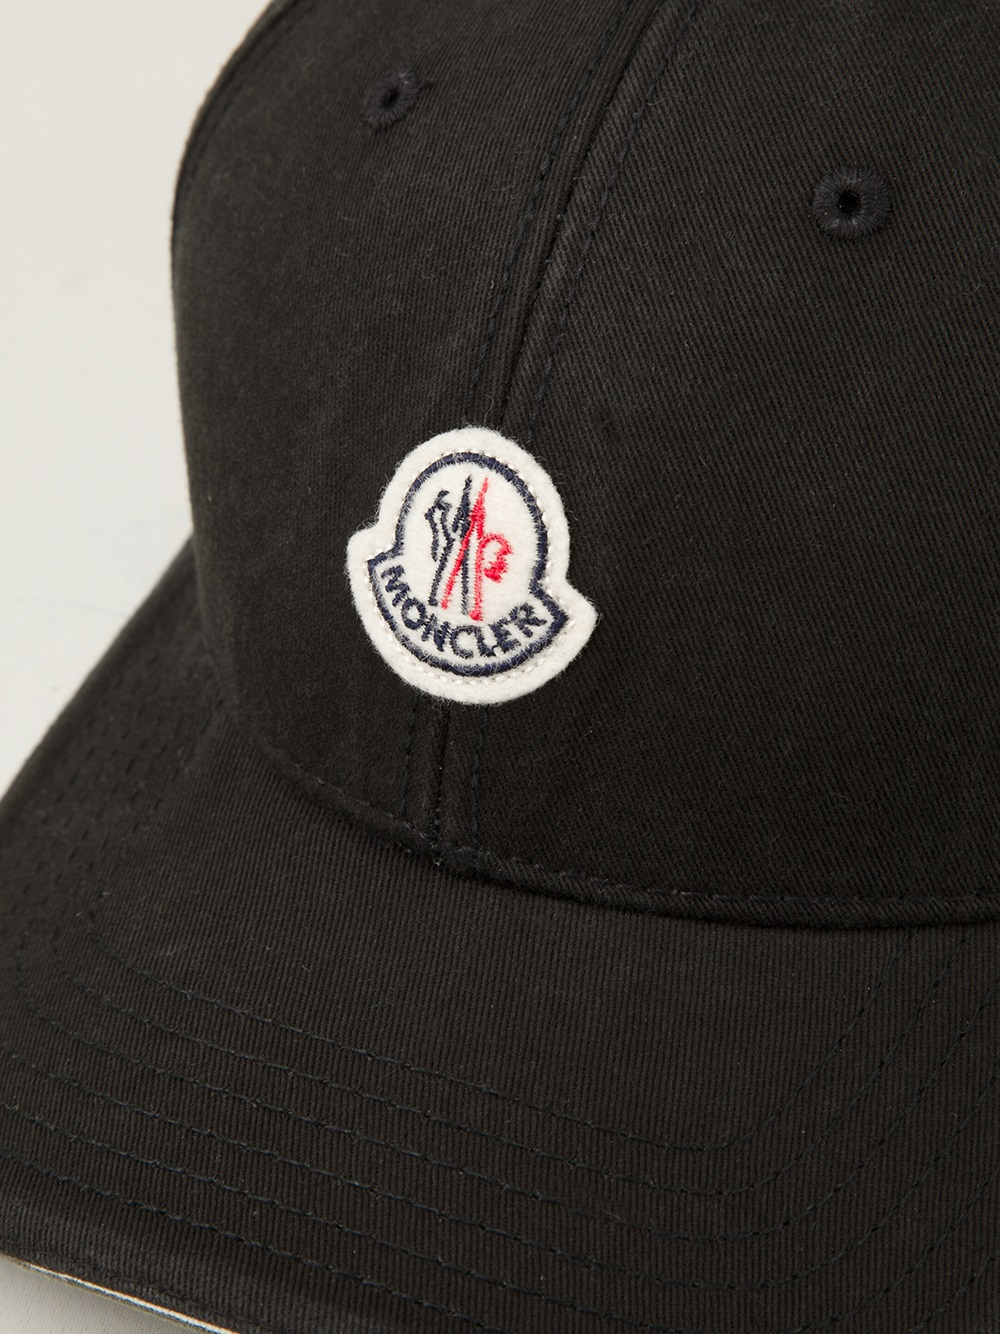 Lyst - Moncler Classic Baseball Cap in Blue for Men 662f90ac87a